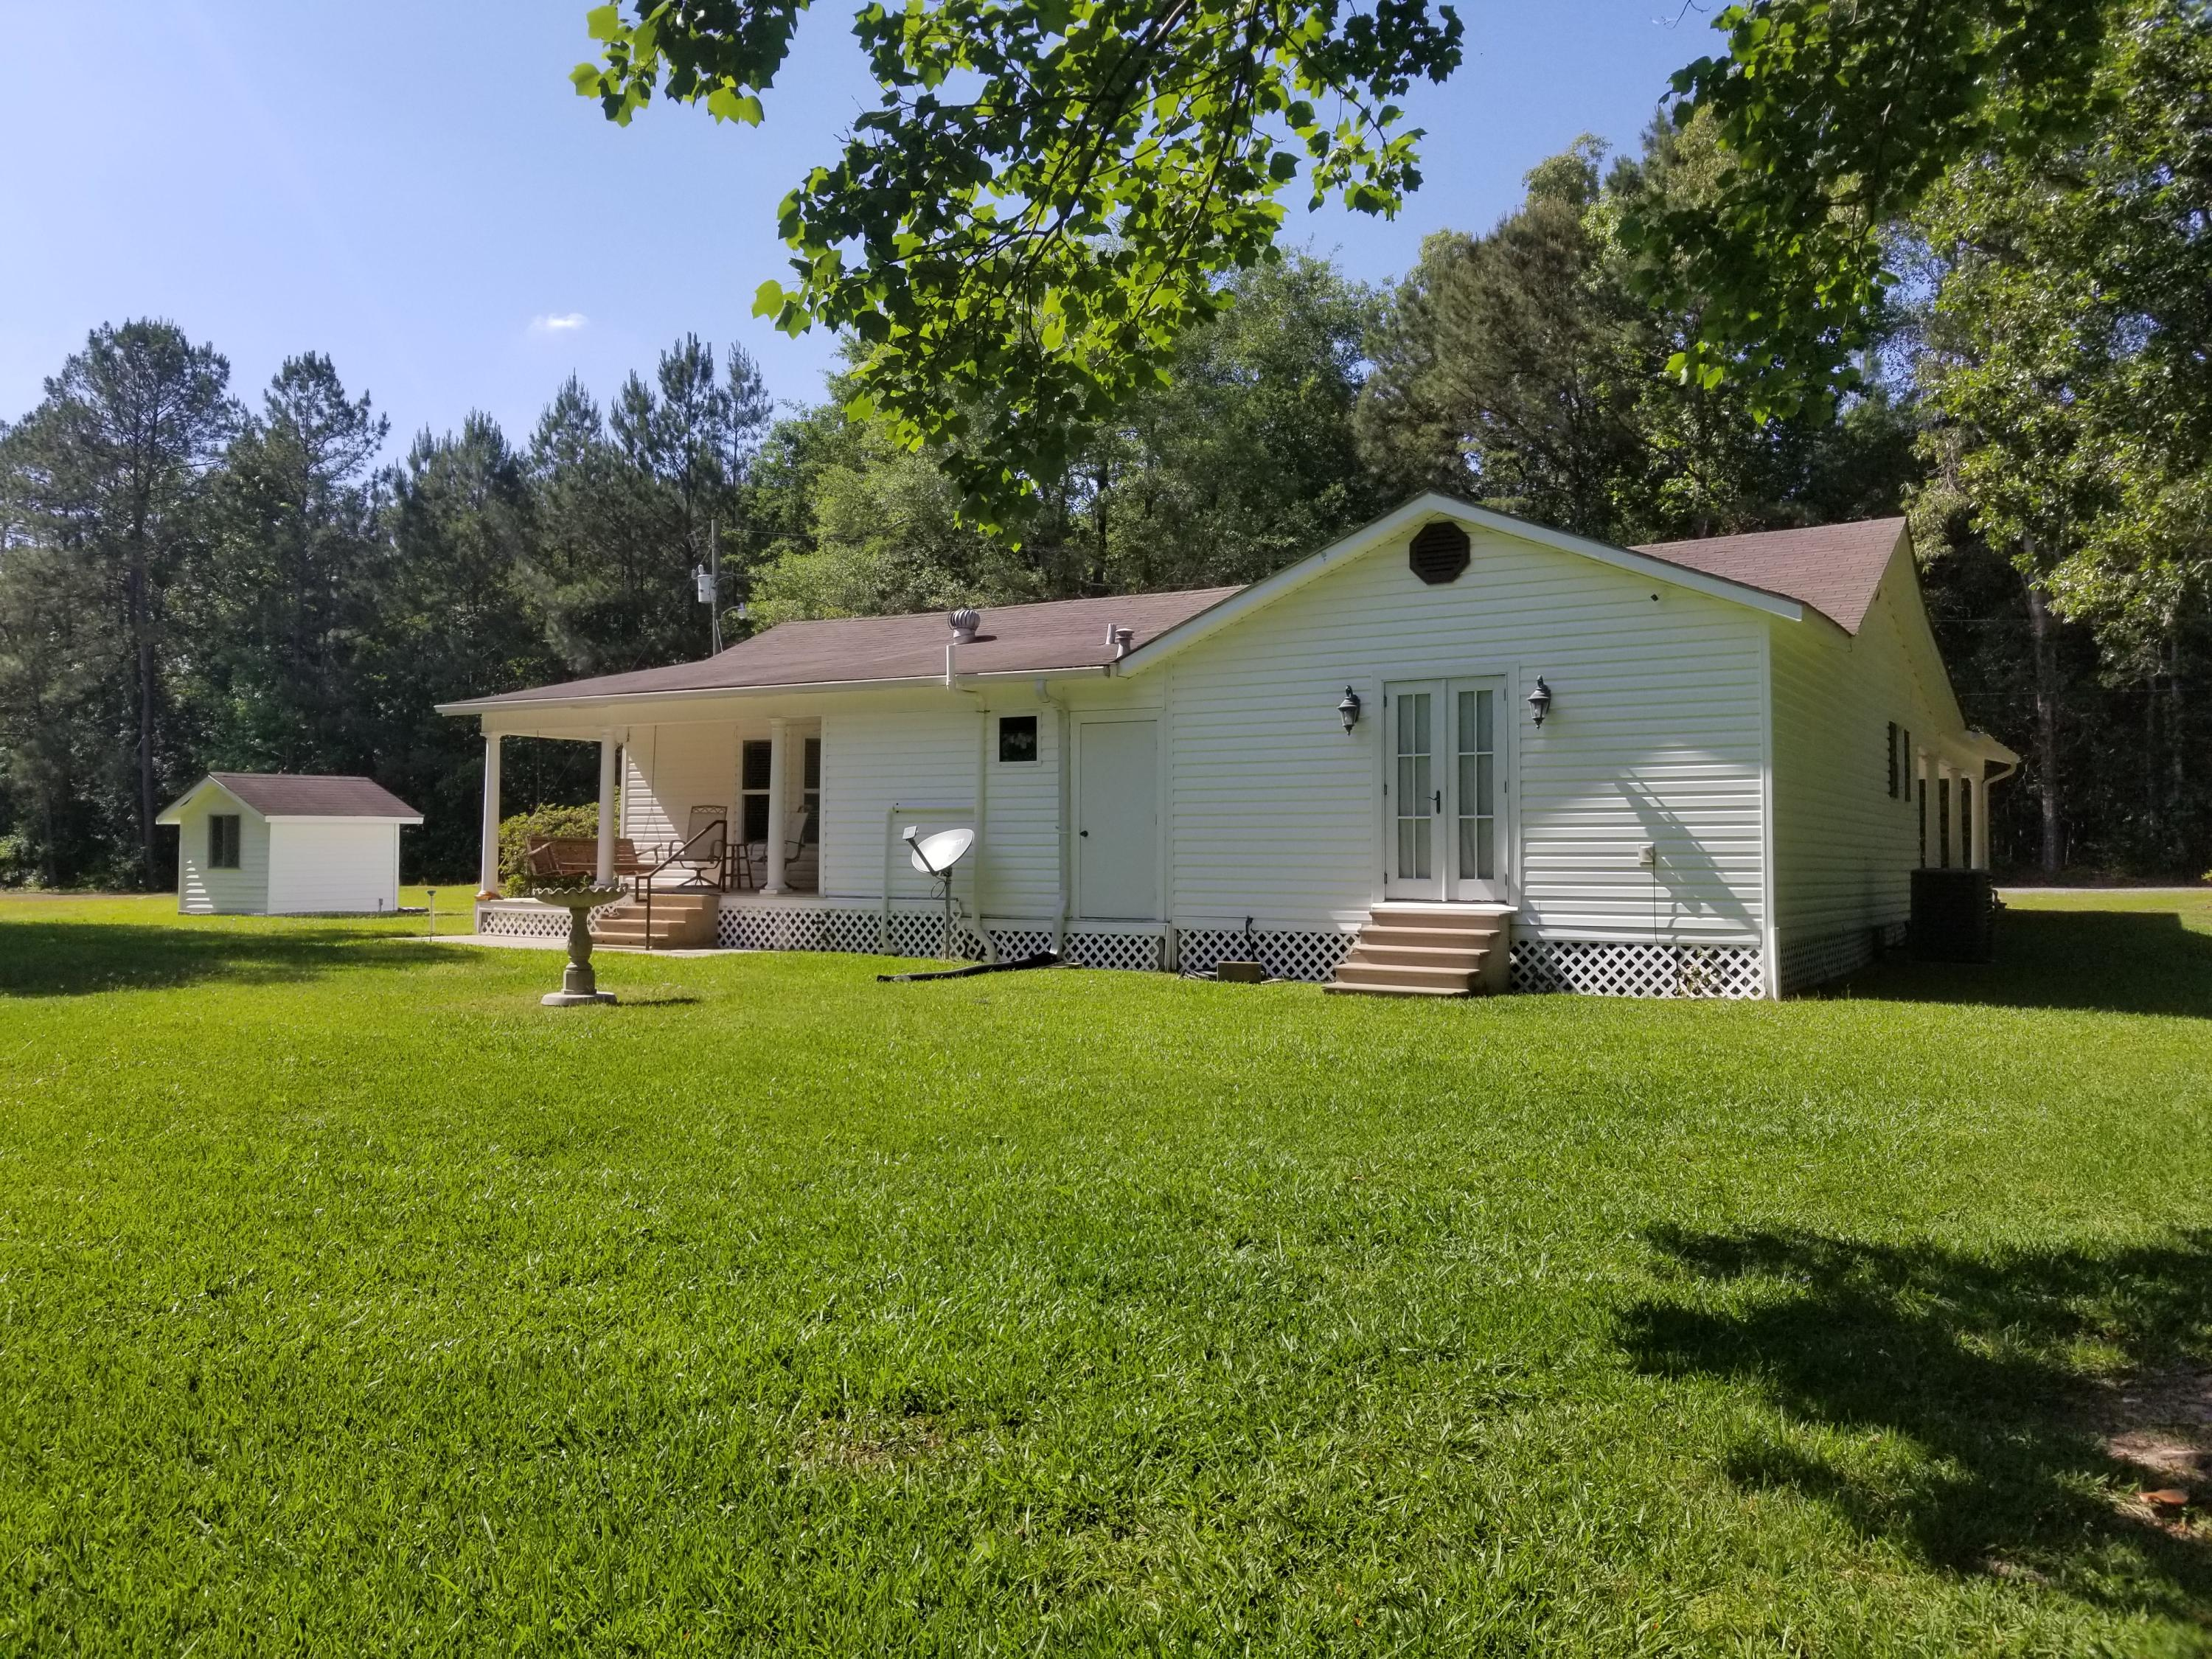 DeRidder home for sale, 150 Everett Cooley Rd, DeRidder LA - $132,500